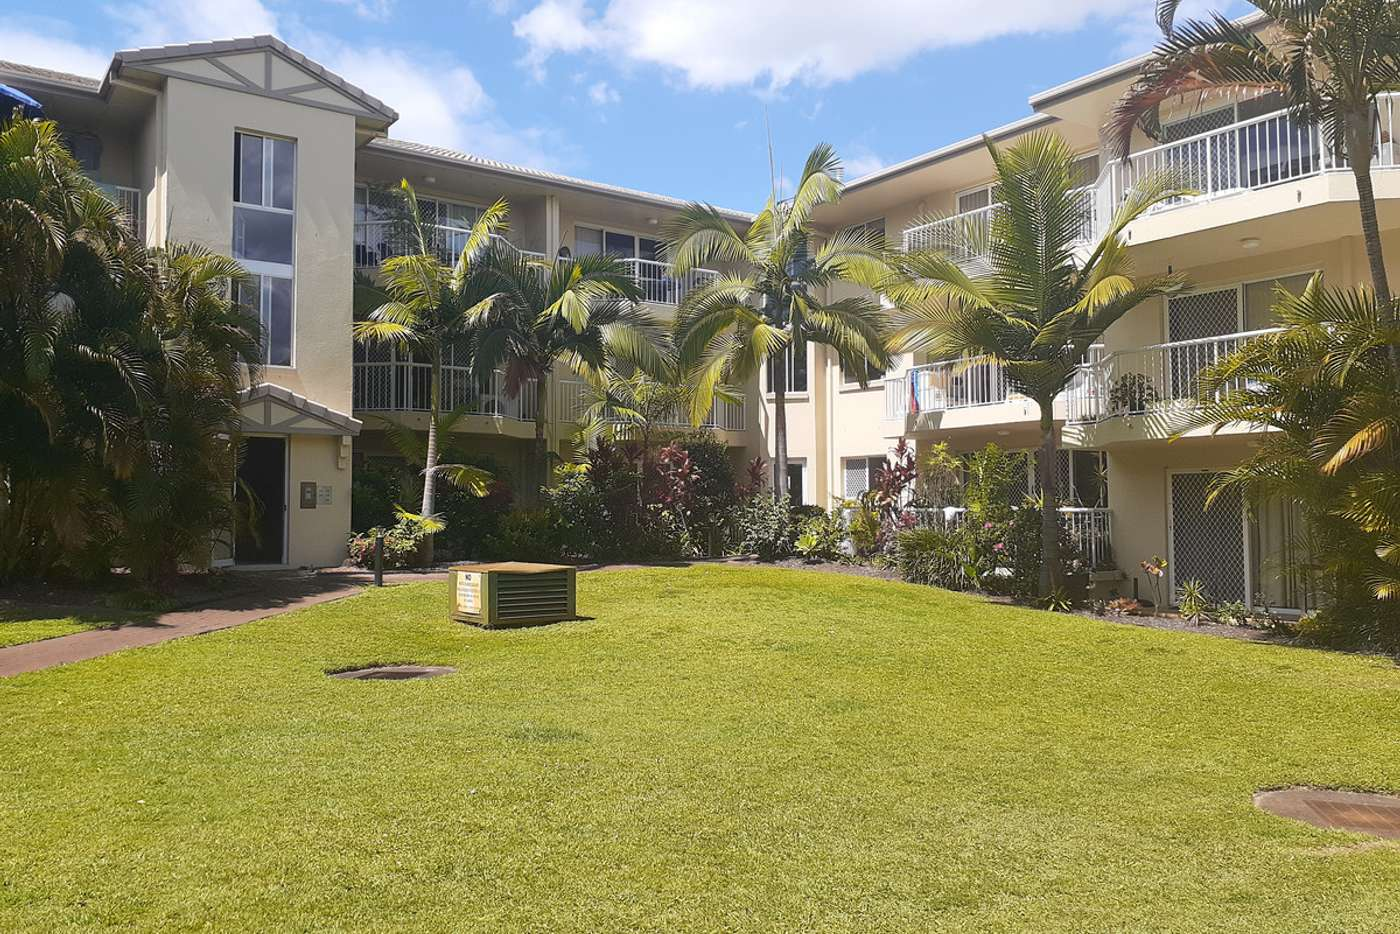 Main view of Homely unit listing, 250/19 Burleigh Street, Burleigh Heads QLD 4220